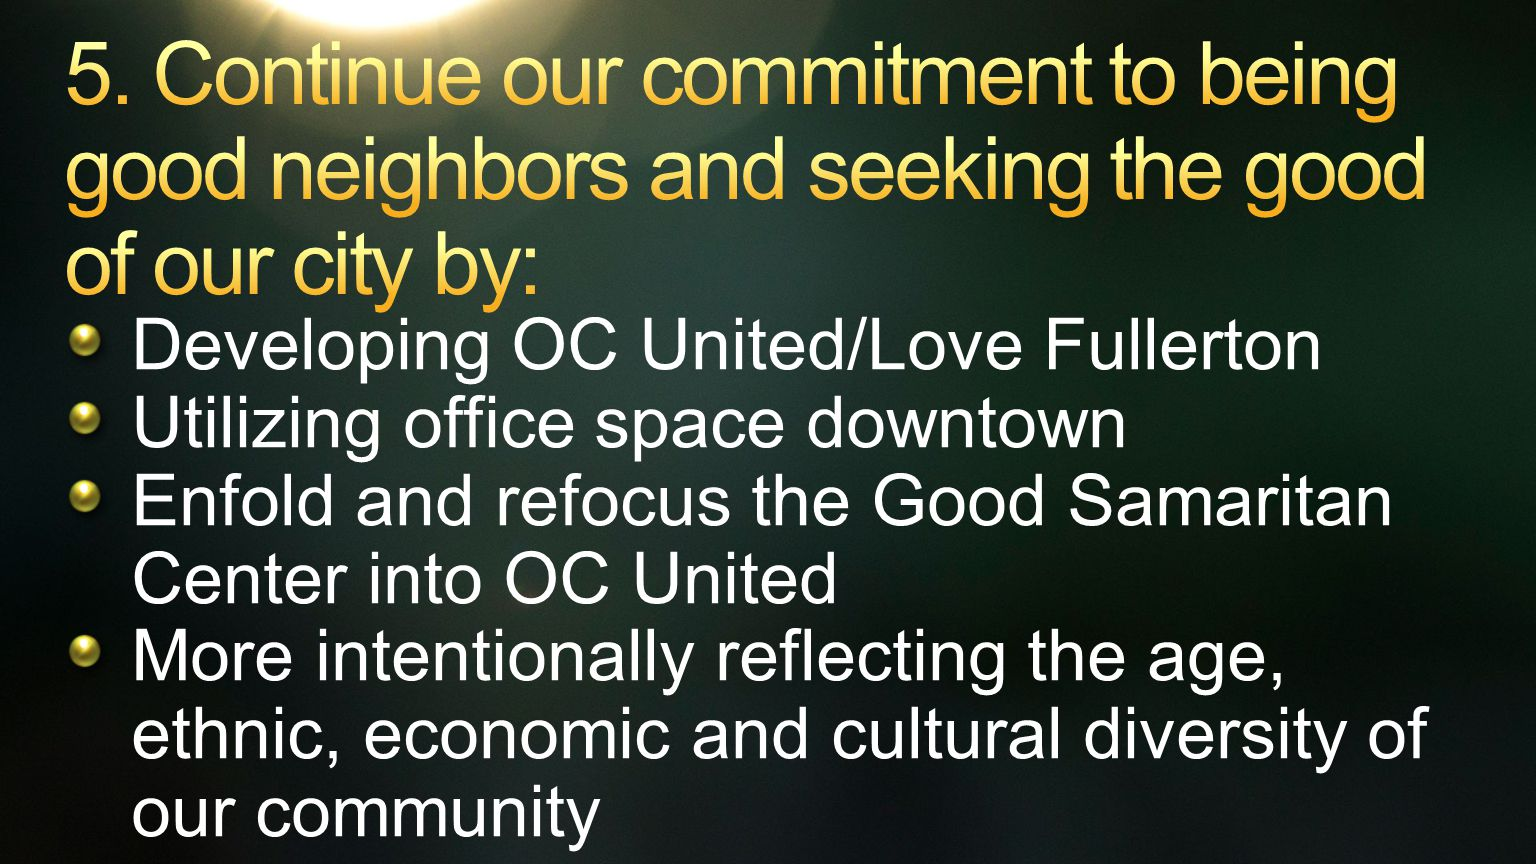 Developing OC United/Love Fullerton Utilizing office space downtown Enfold and refocus the Good Samaritan Center into OC United More intentionally reflecting the age, ethnic, economic and cultural diversity of our community